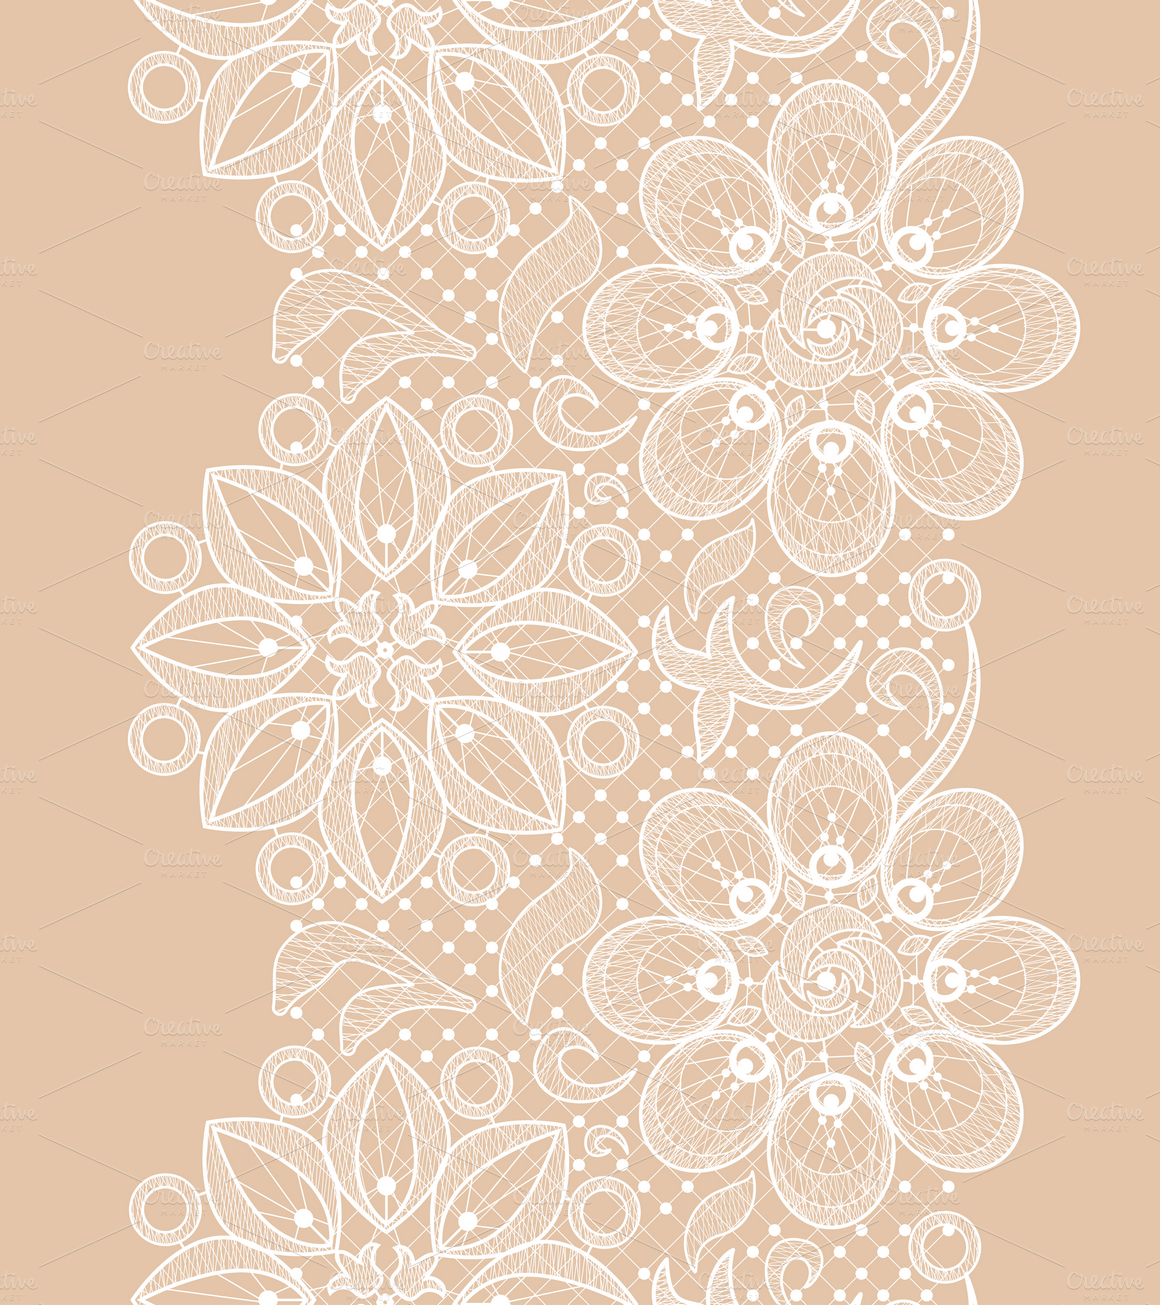 Seamless lace patterns by Macrovector on Creative Market ...